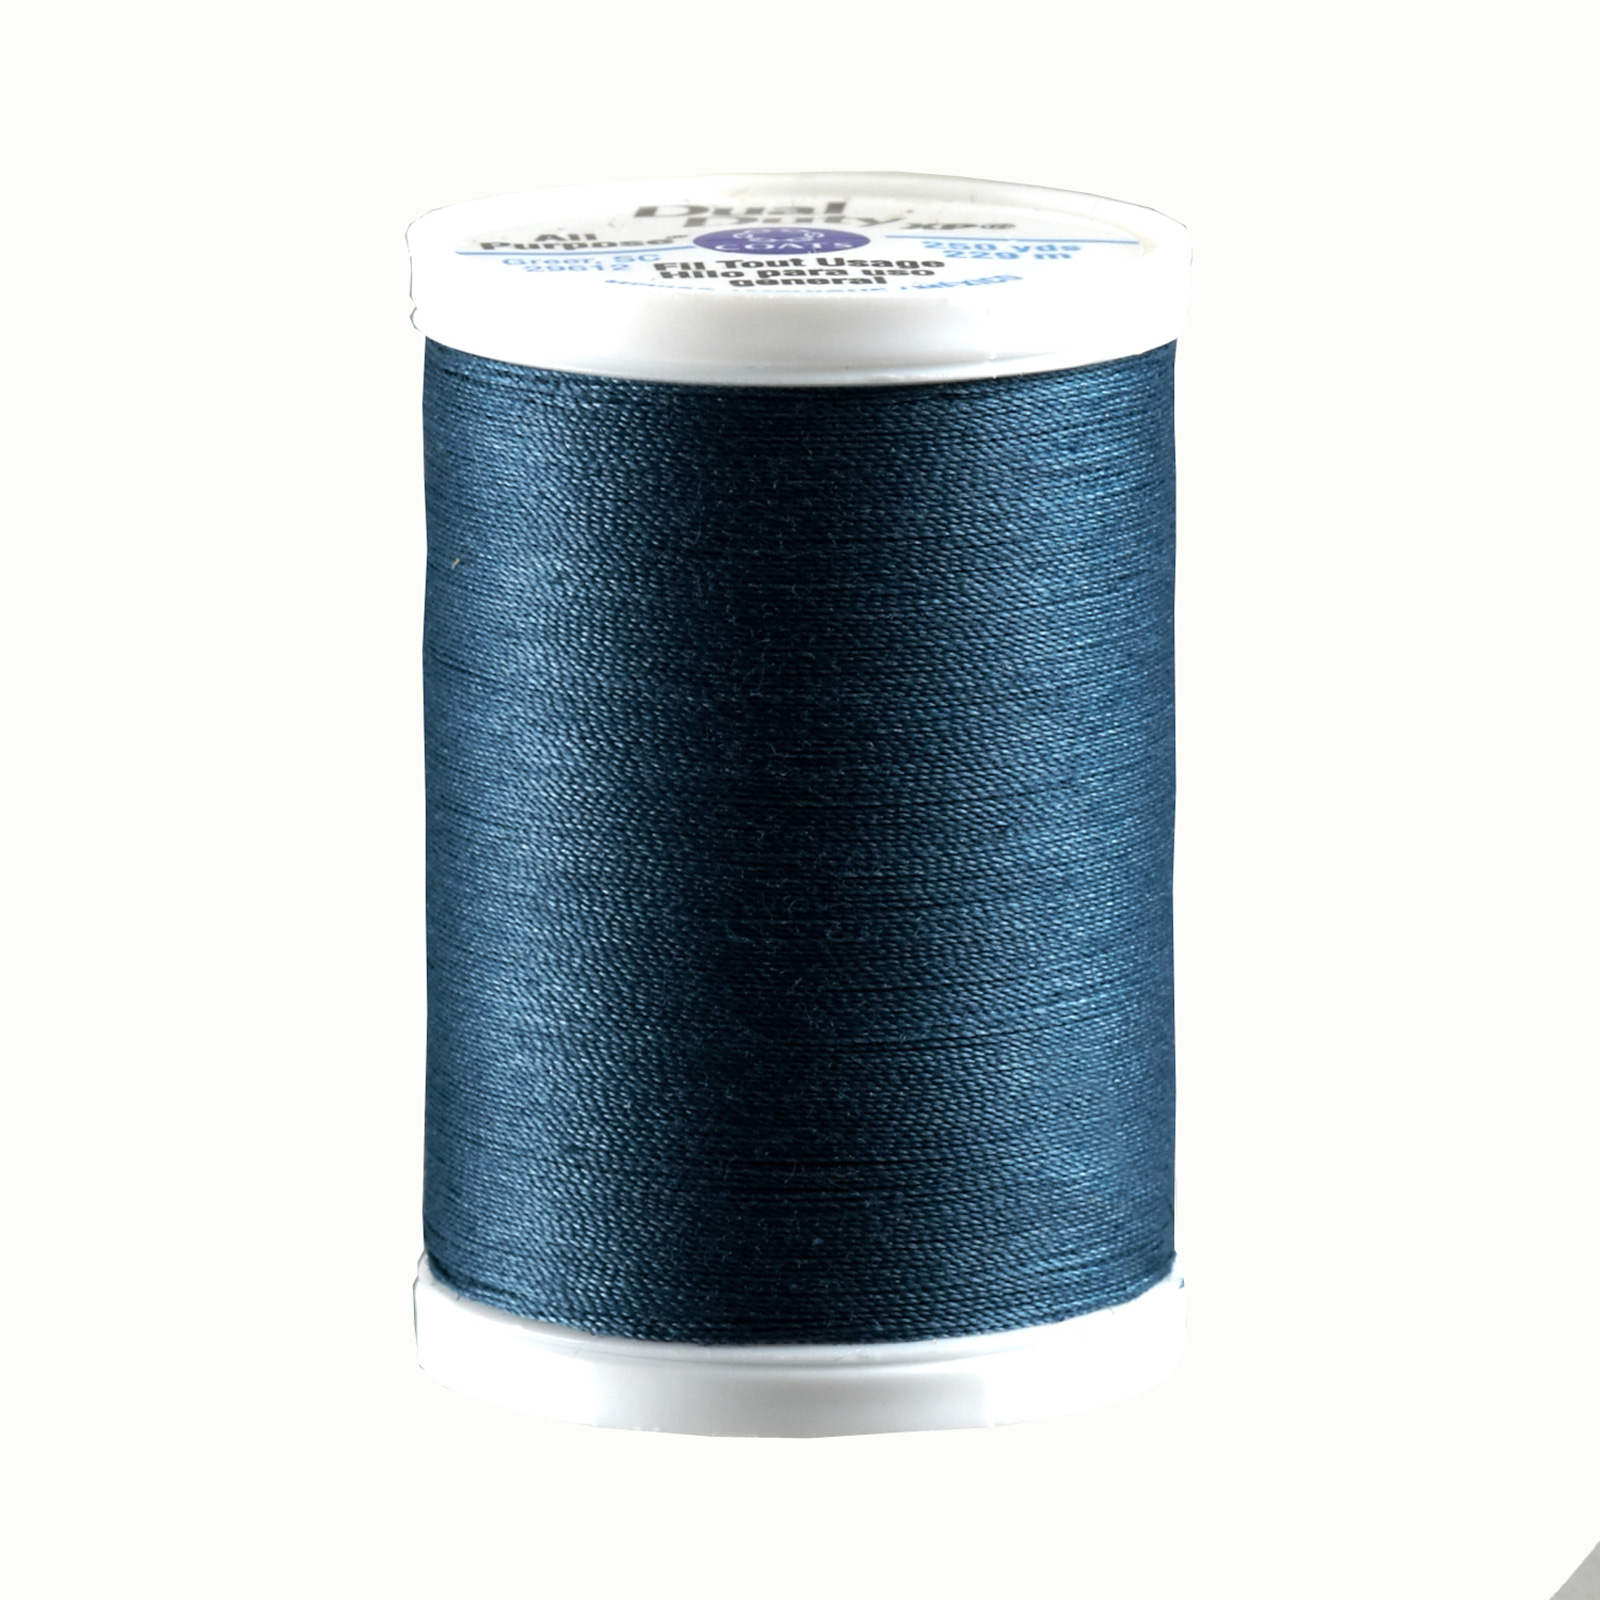 Coats & Clark Dual Duty XP 250yd Light Teal Blue